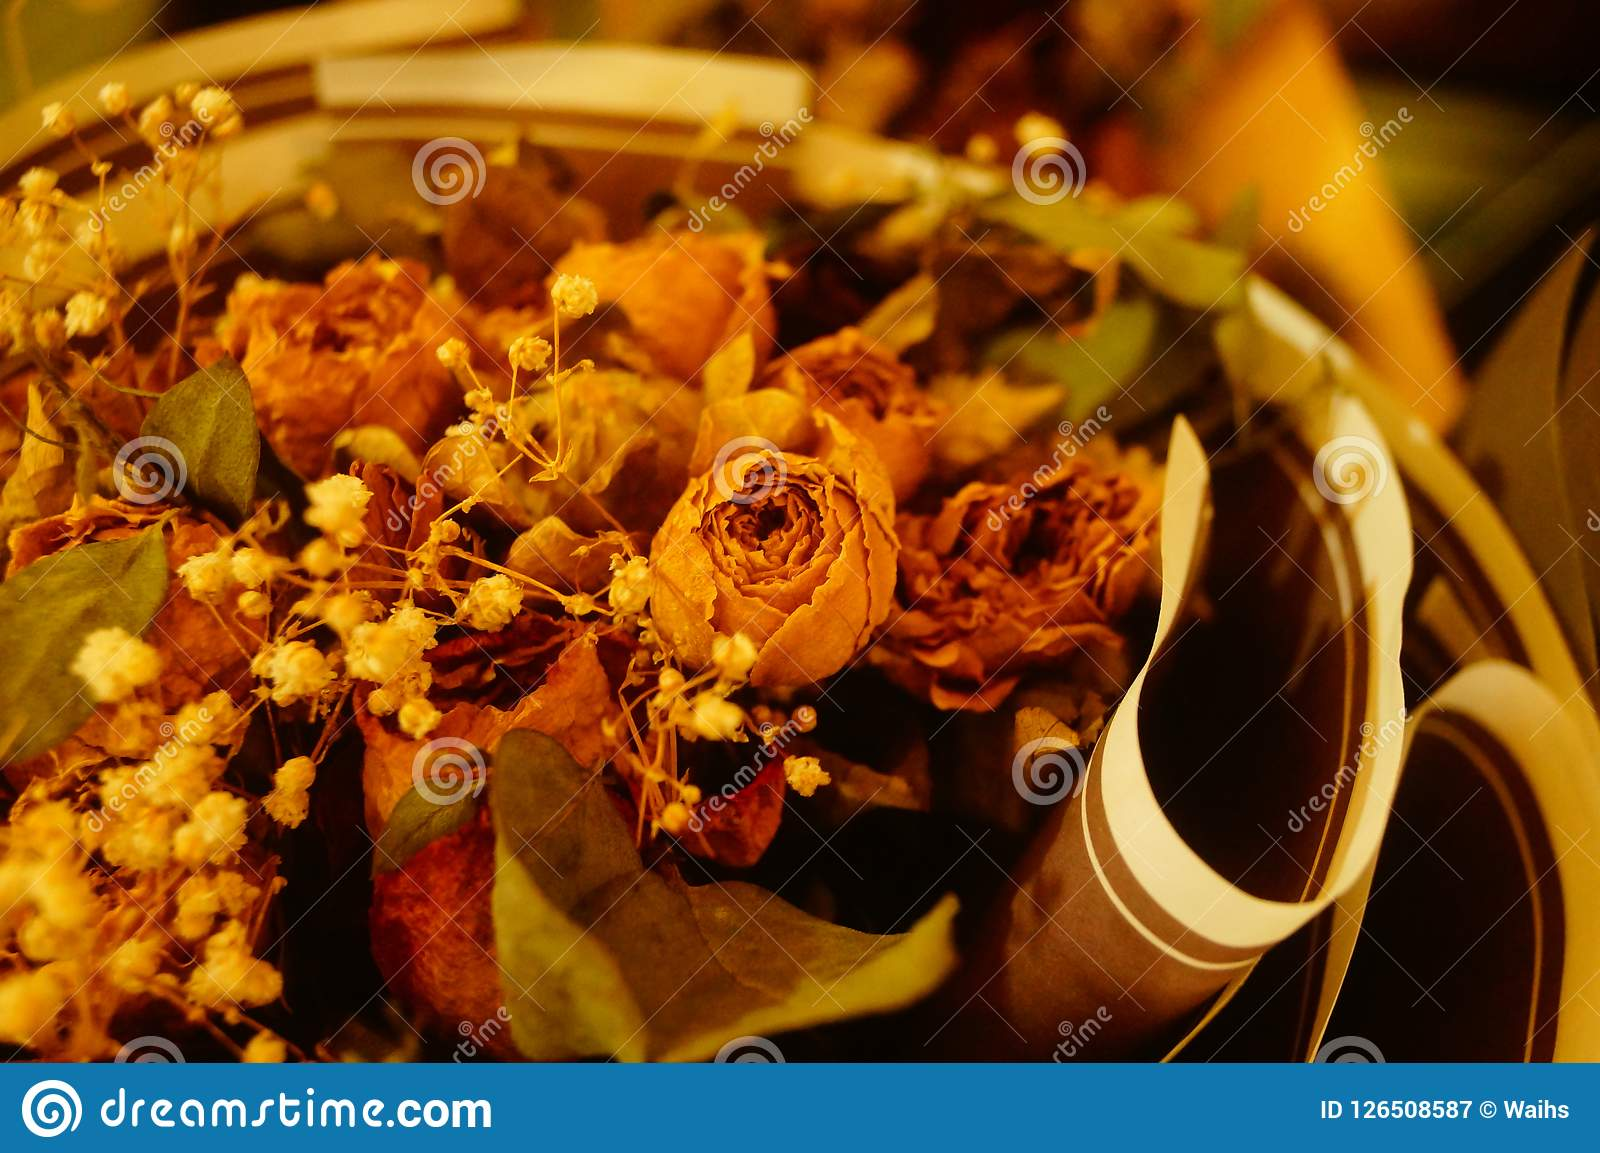 Dried Flower Landscapes Are Sold In Flower Shops Stock Image